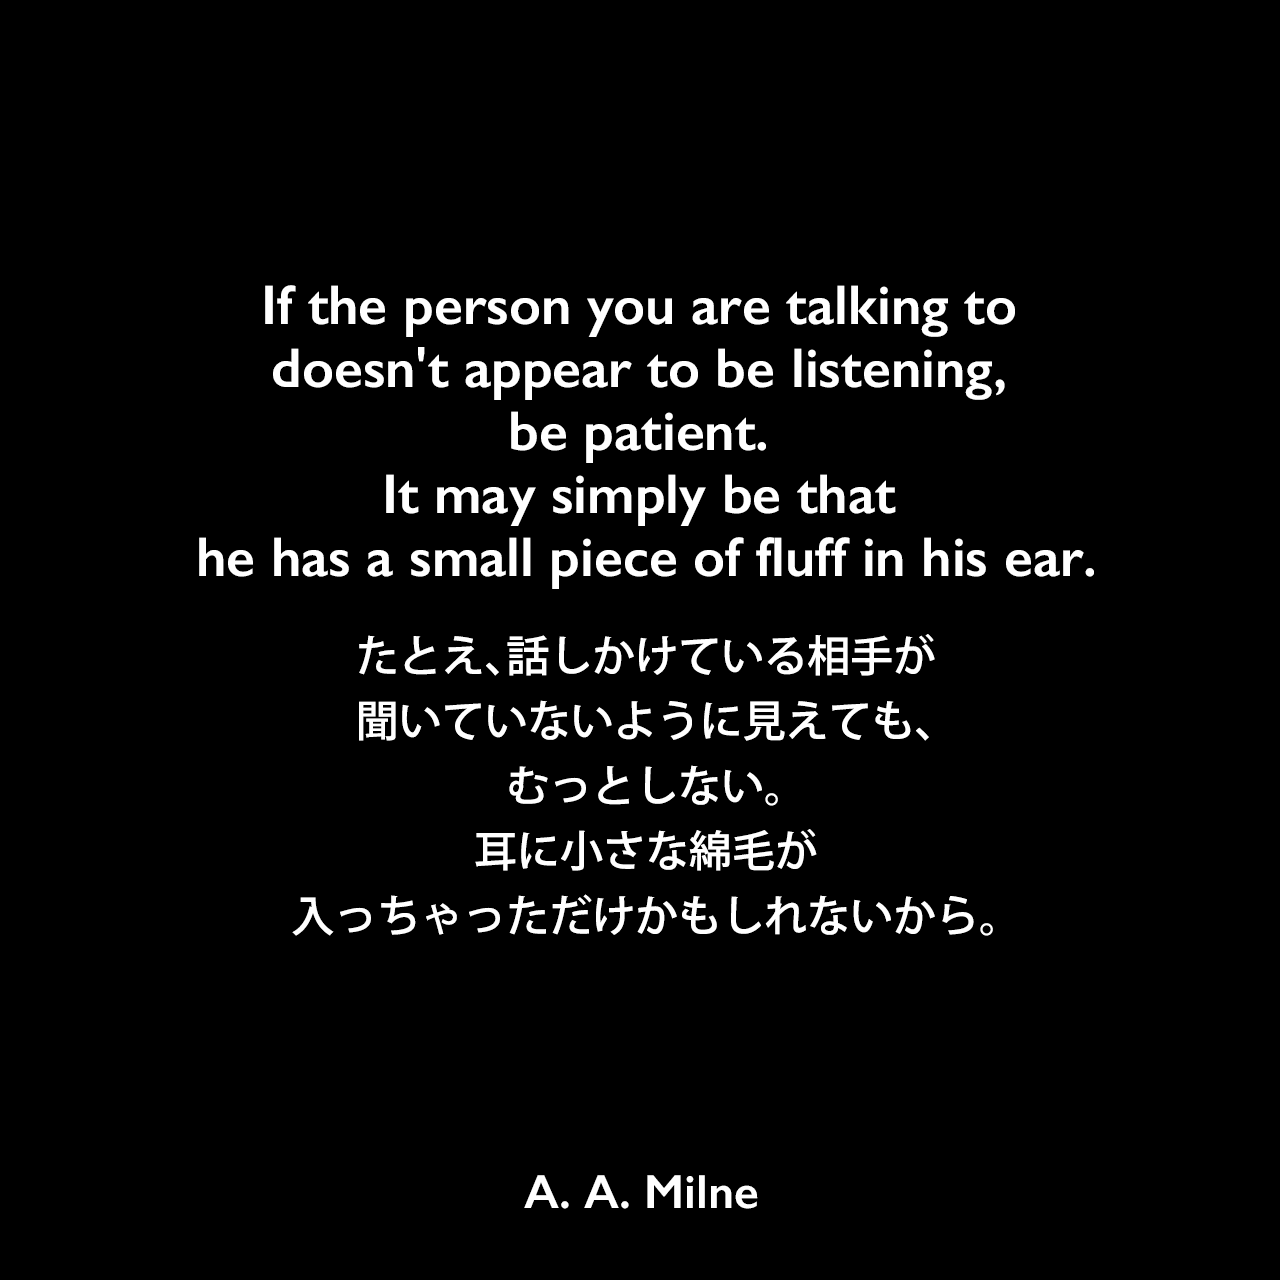 If the person you are talking to doesn't appear to be listening, be patient. It may simply be that he has a small piece of fluff in his ear.たとえ、話しかけている相手が聞いていないように見えても、むっとしない。耳に小さな綿毛が入っちゃっただけかもしれないから。